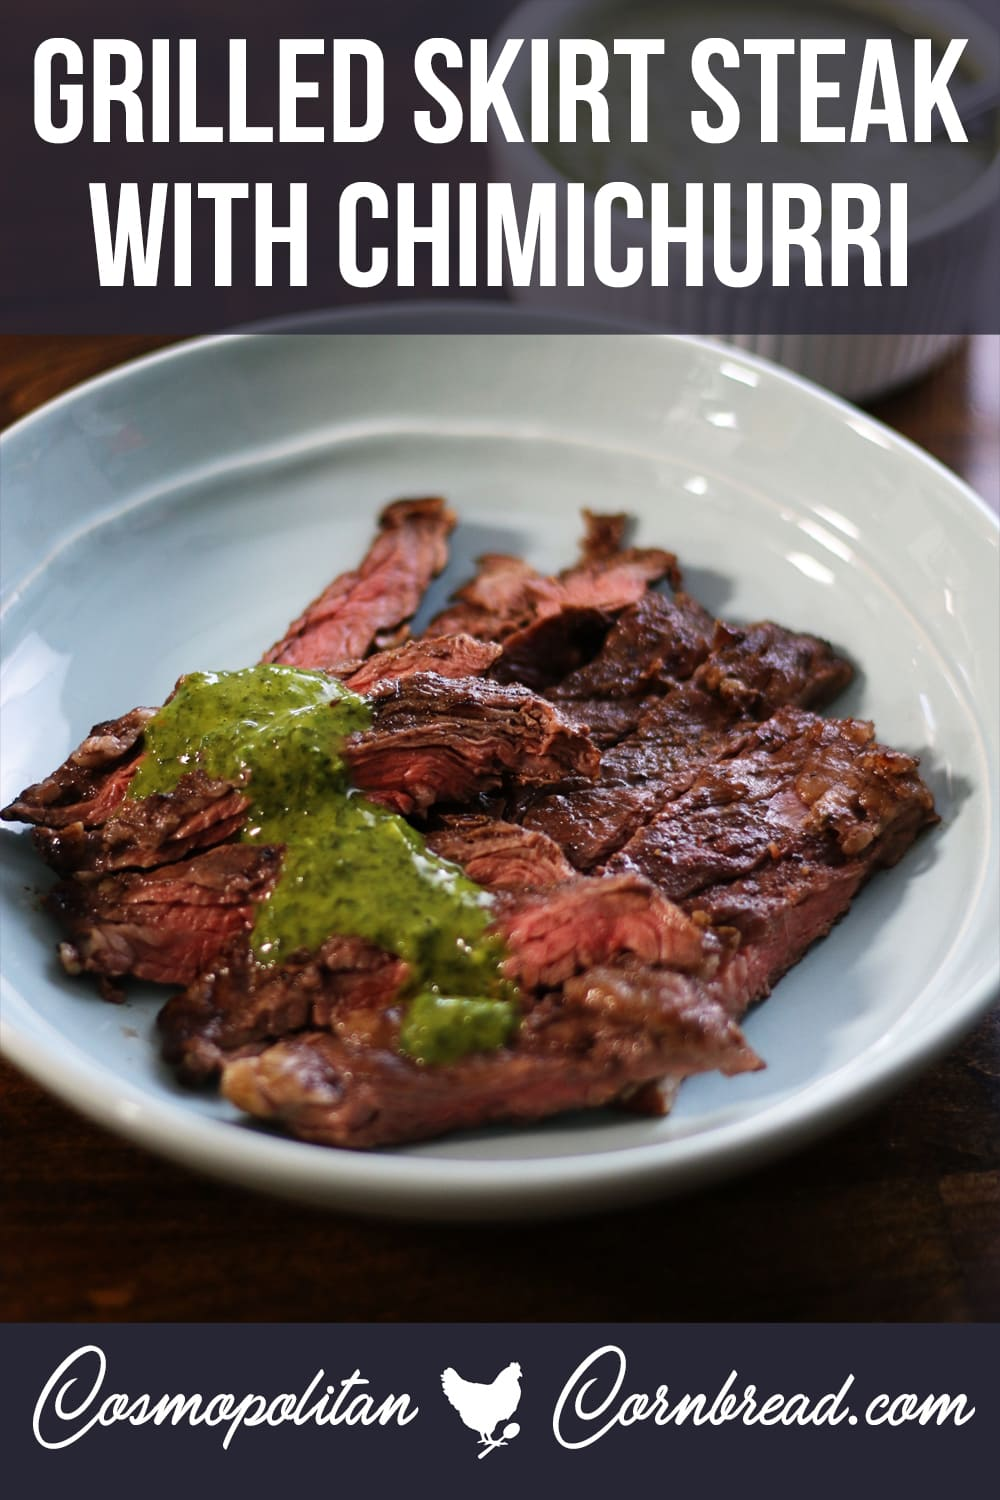 Juicy, tender grilled skirt steak drizzled with fresh and zesty chimichurri. You can not beat this! #Paleo